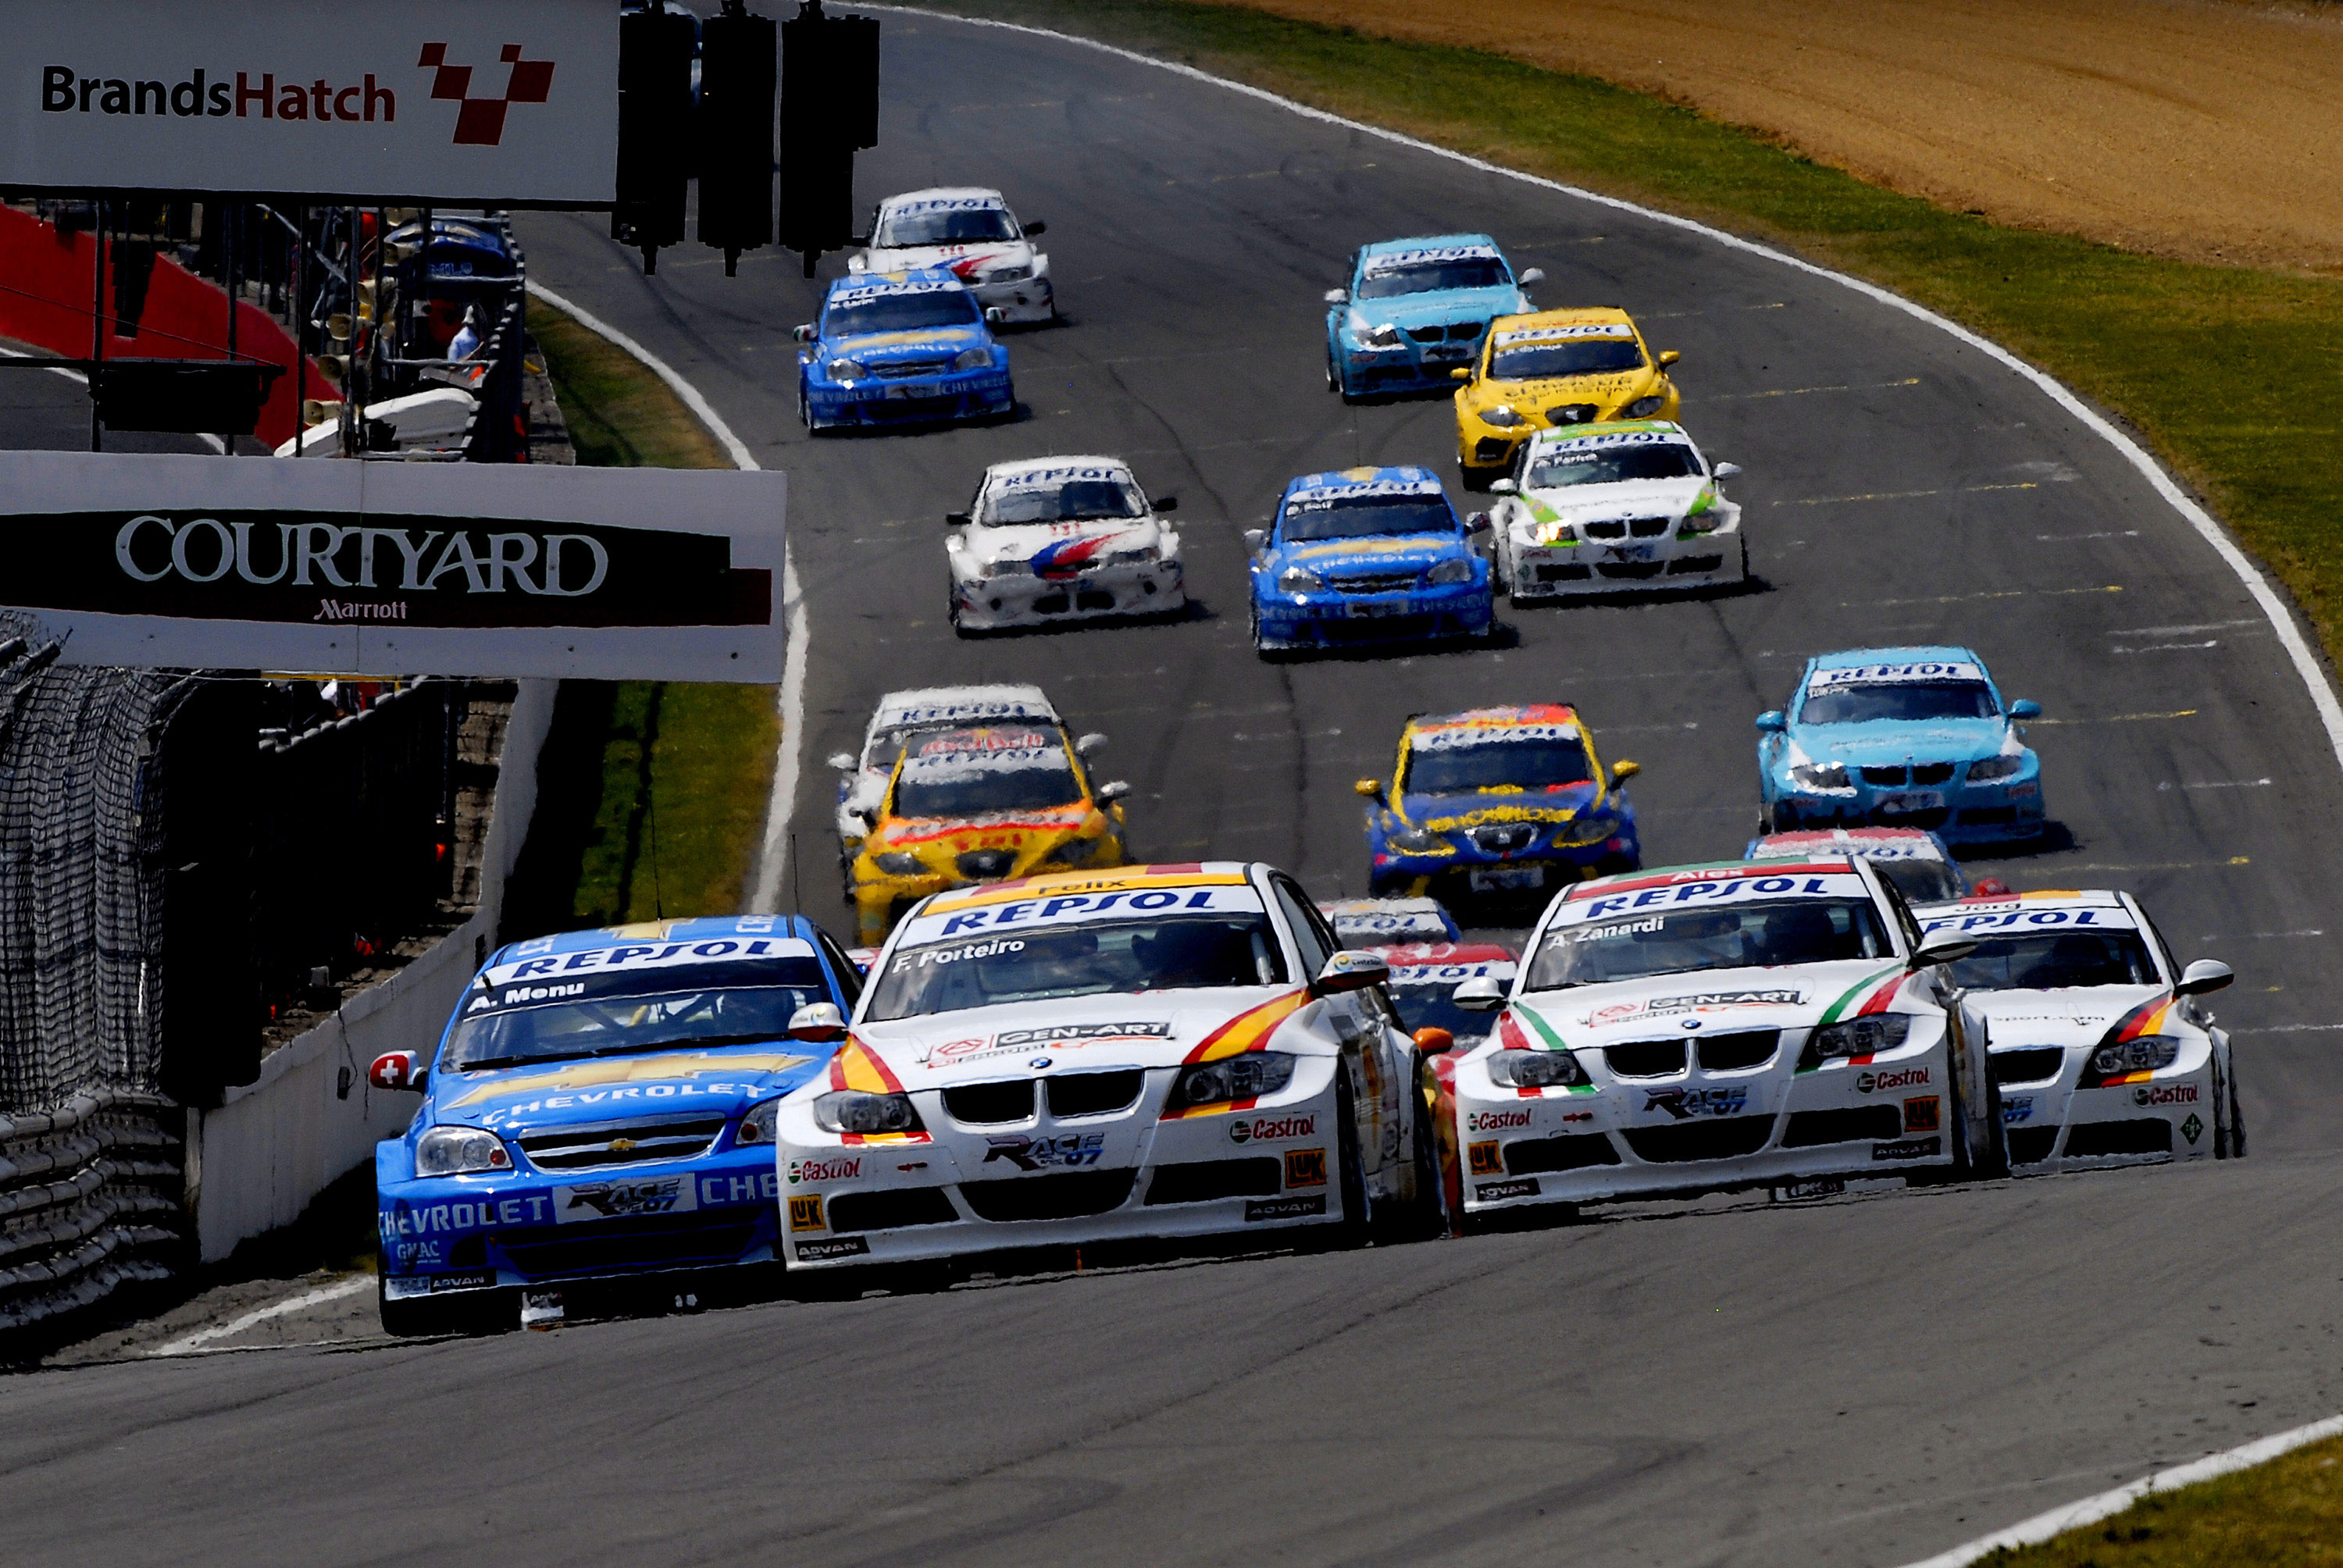 Bmw Wtcc Brands Hatch Gb Picture 6599